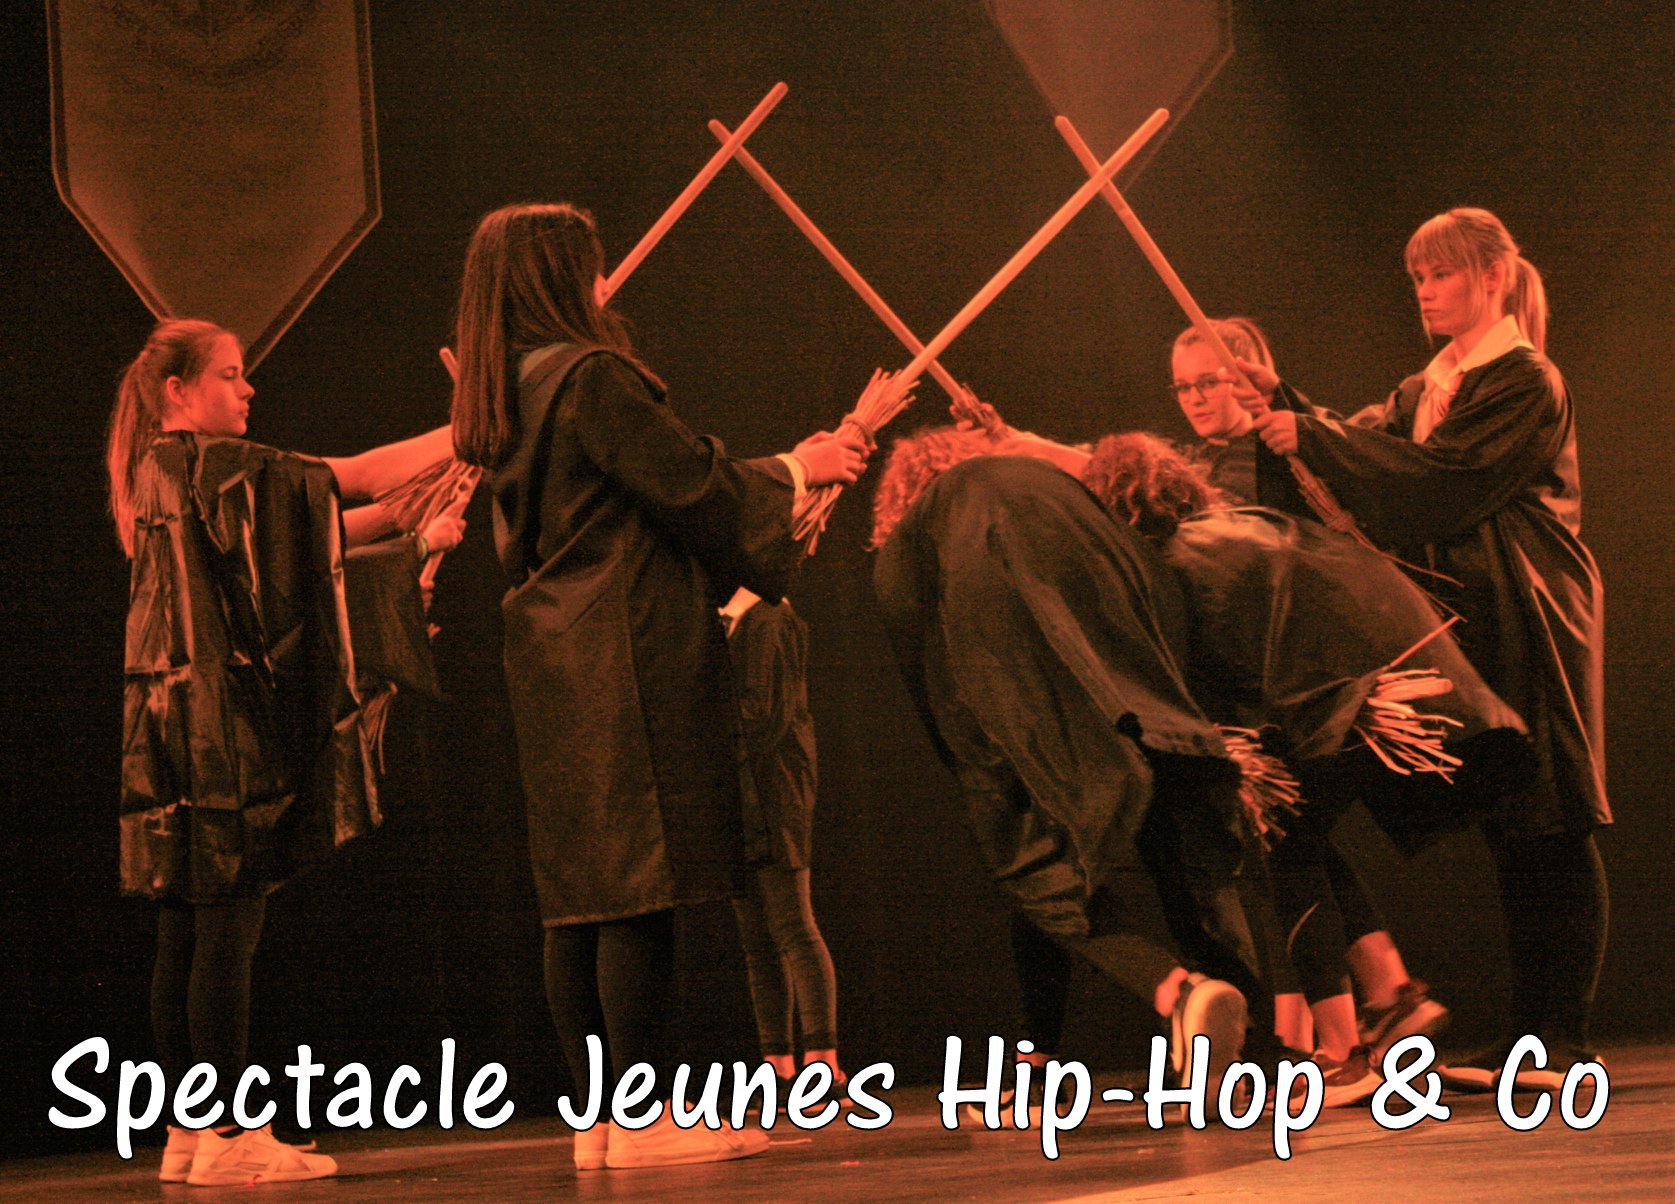 spectacle-jeunes-hip-hop-co-2